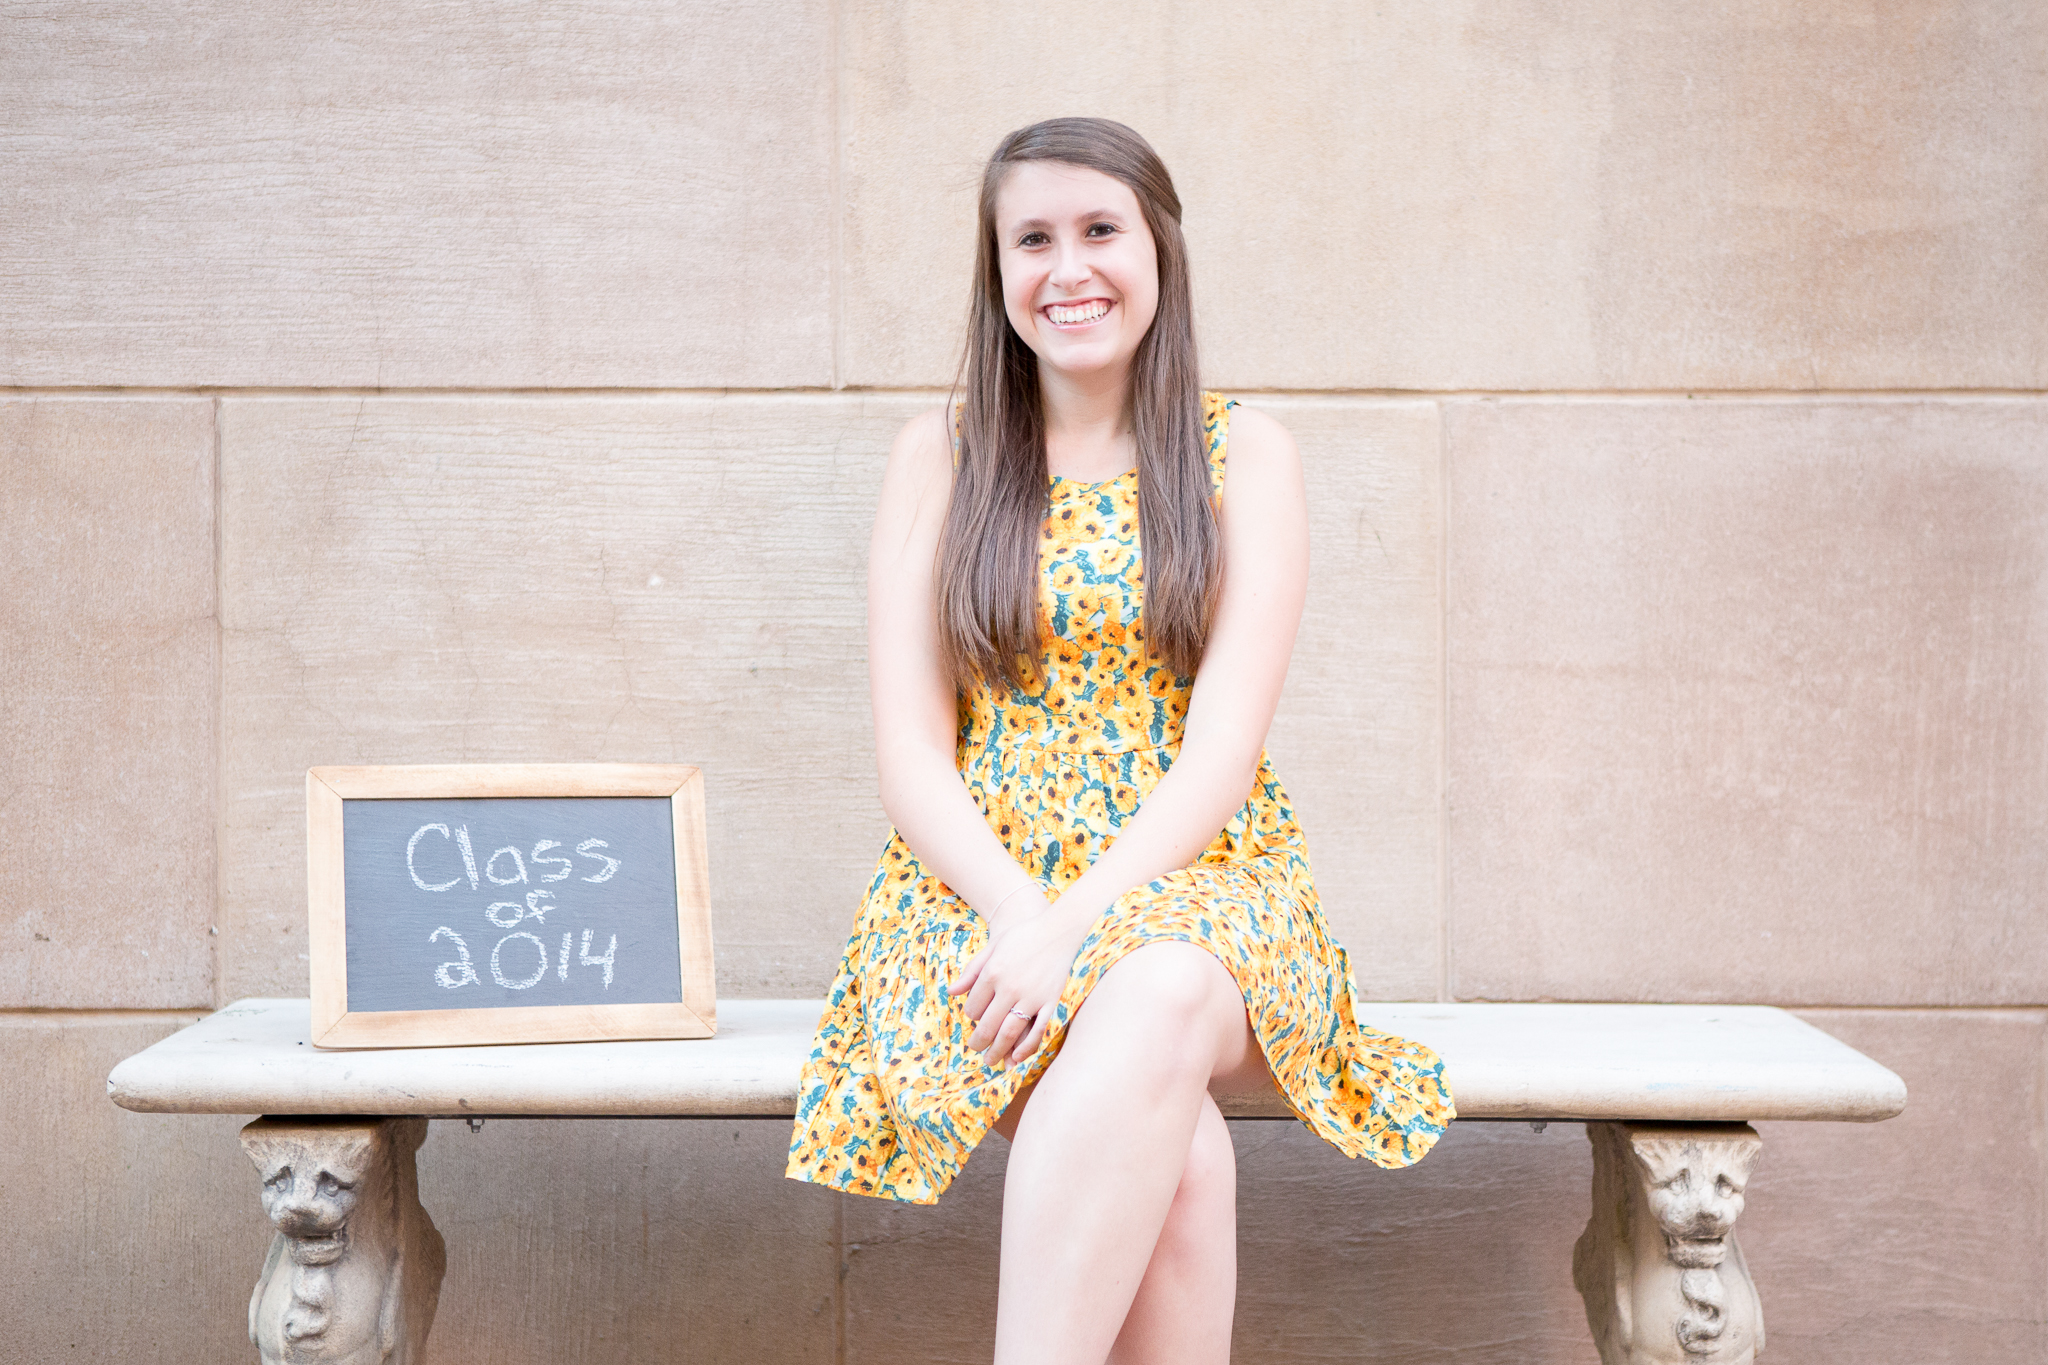 senior-photography-phoenix-class-of-2014-bench-laughing